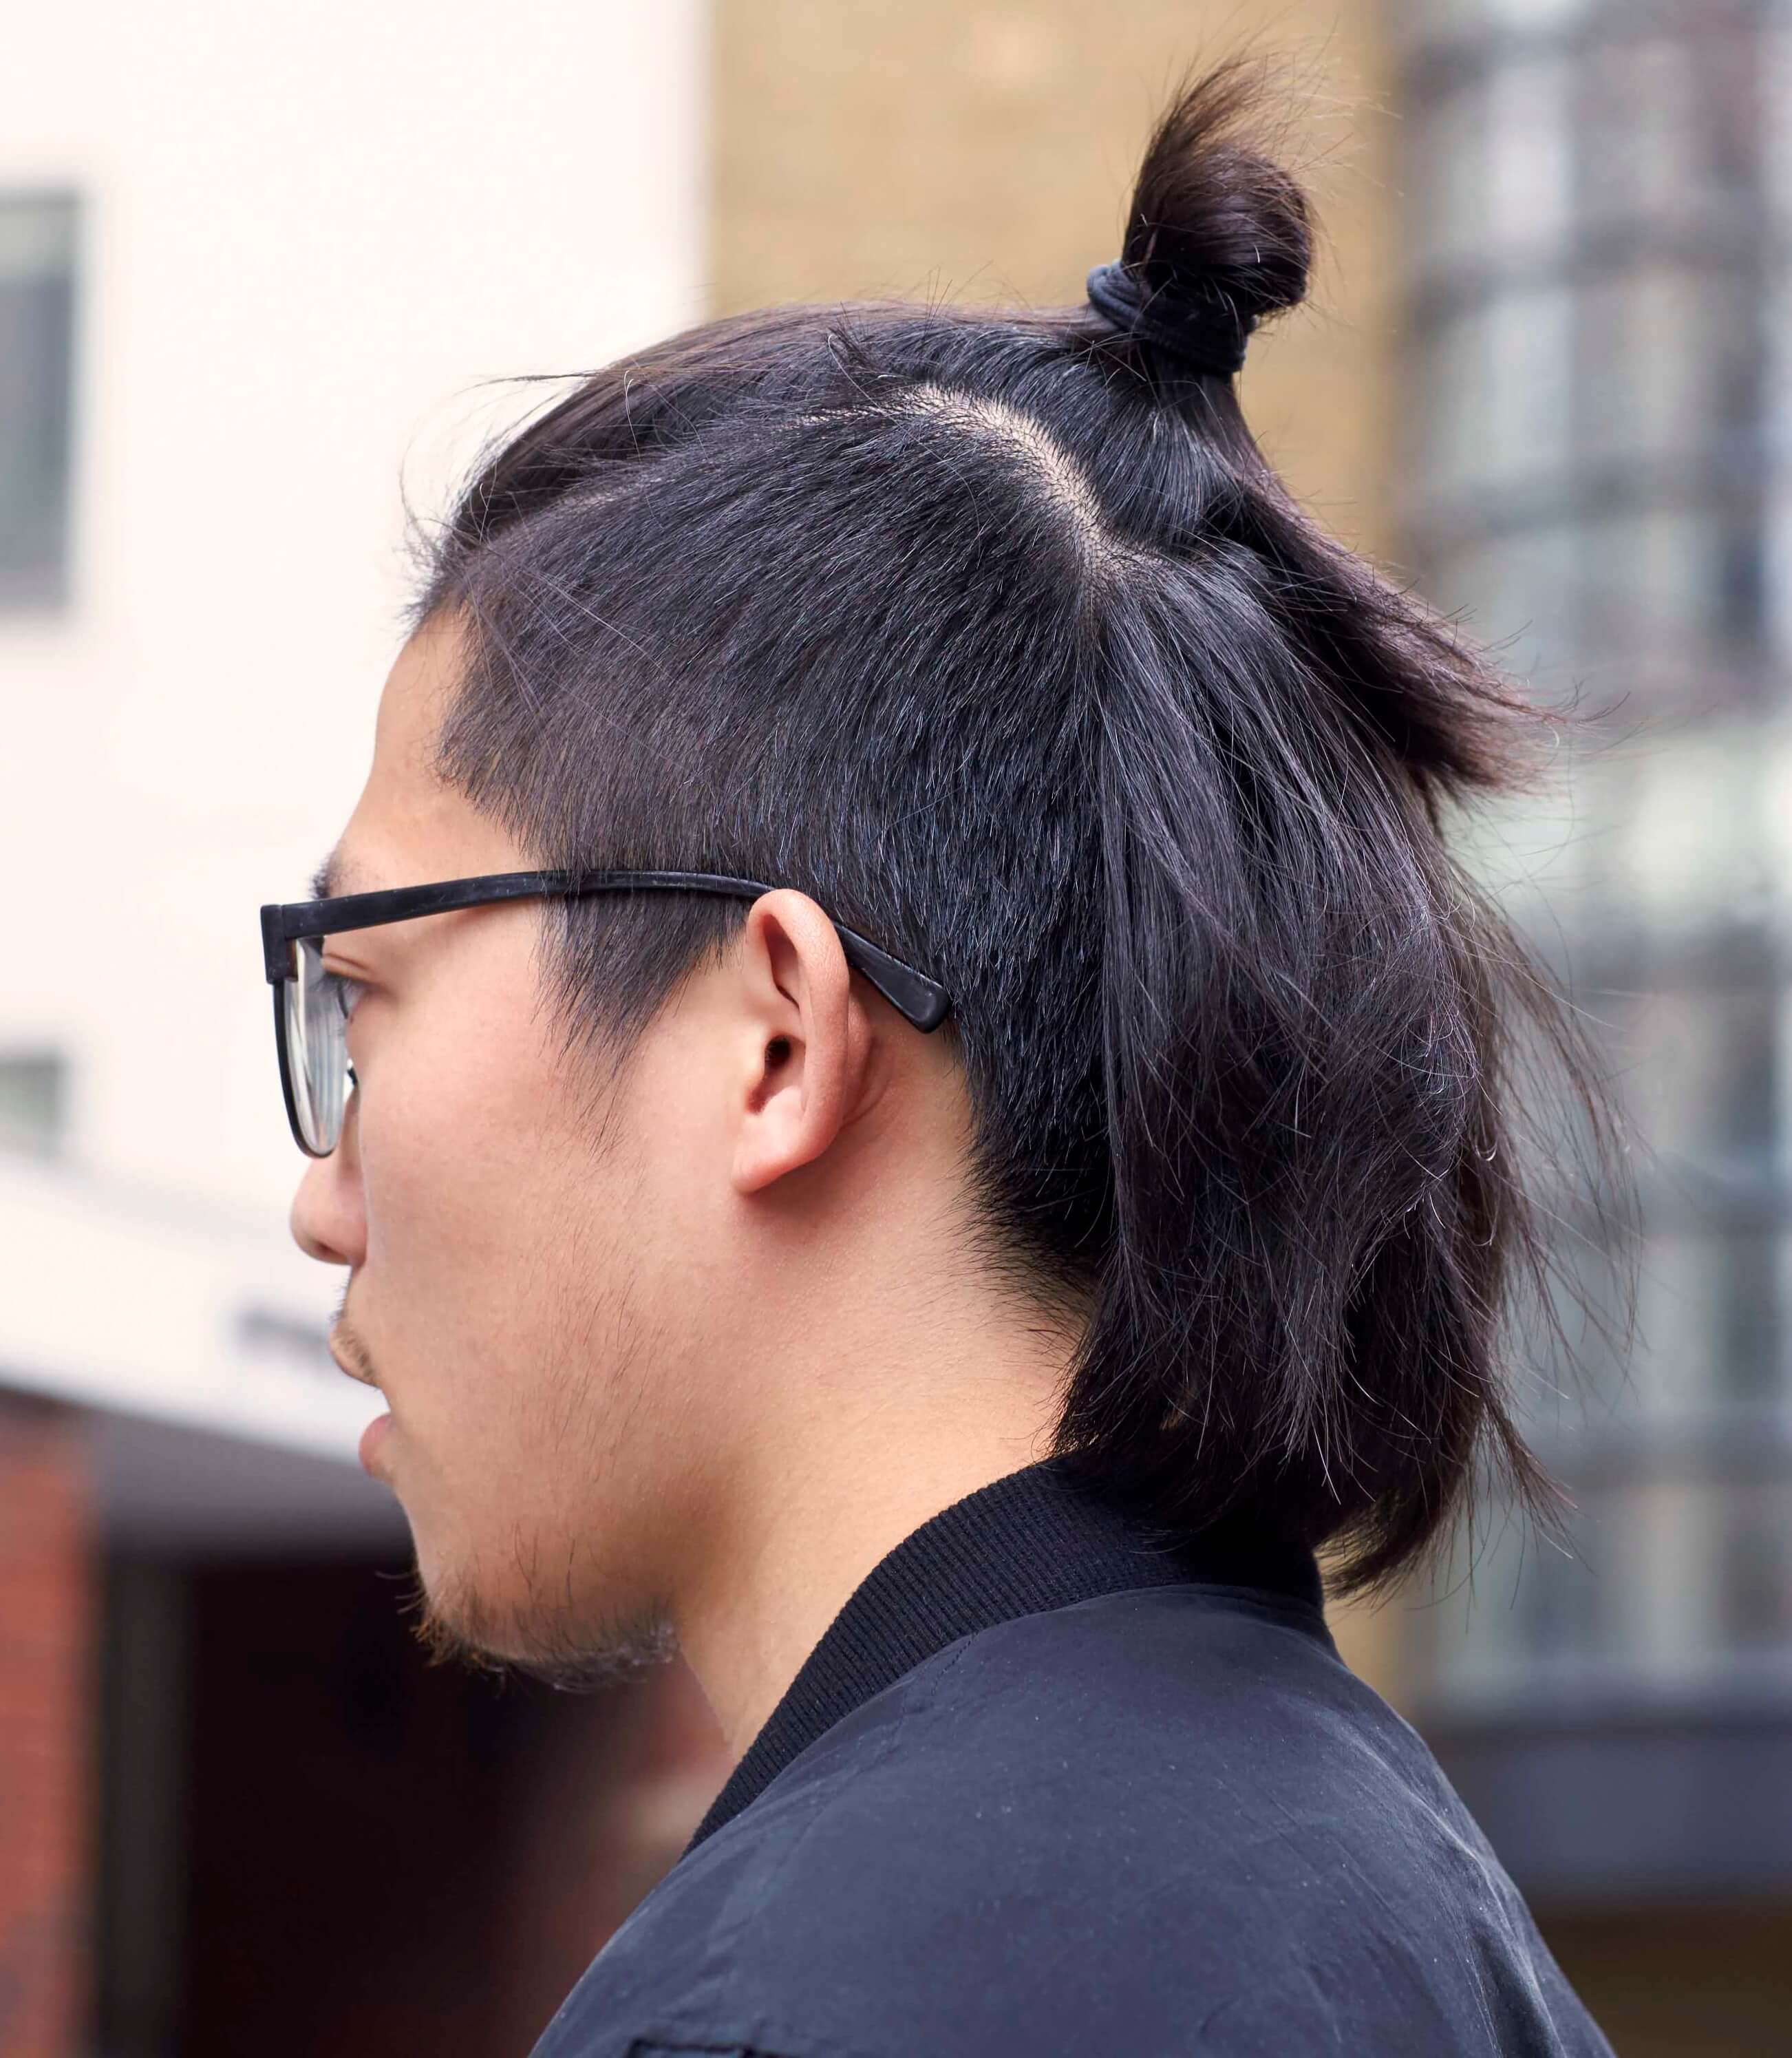 Asian mohawk styles with top knot